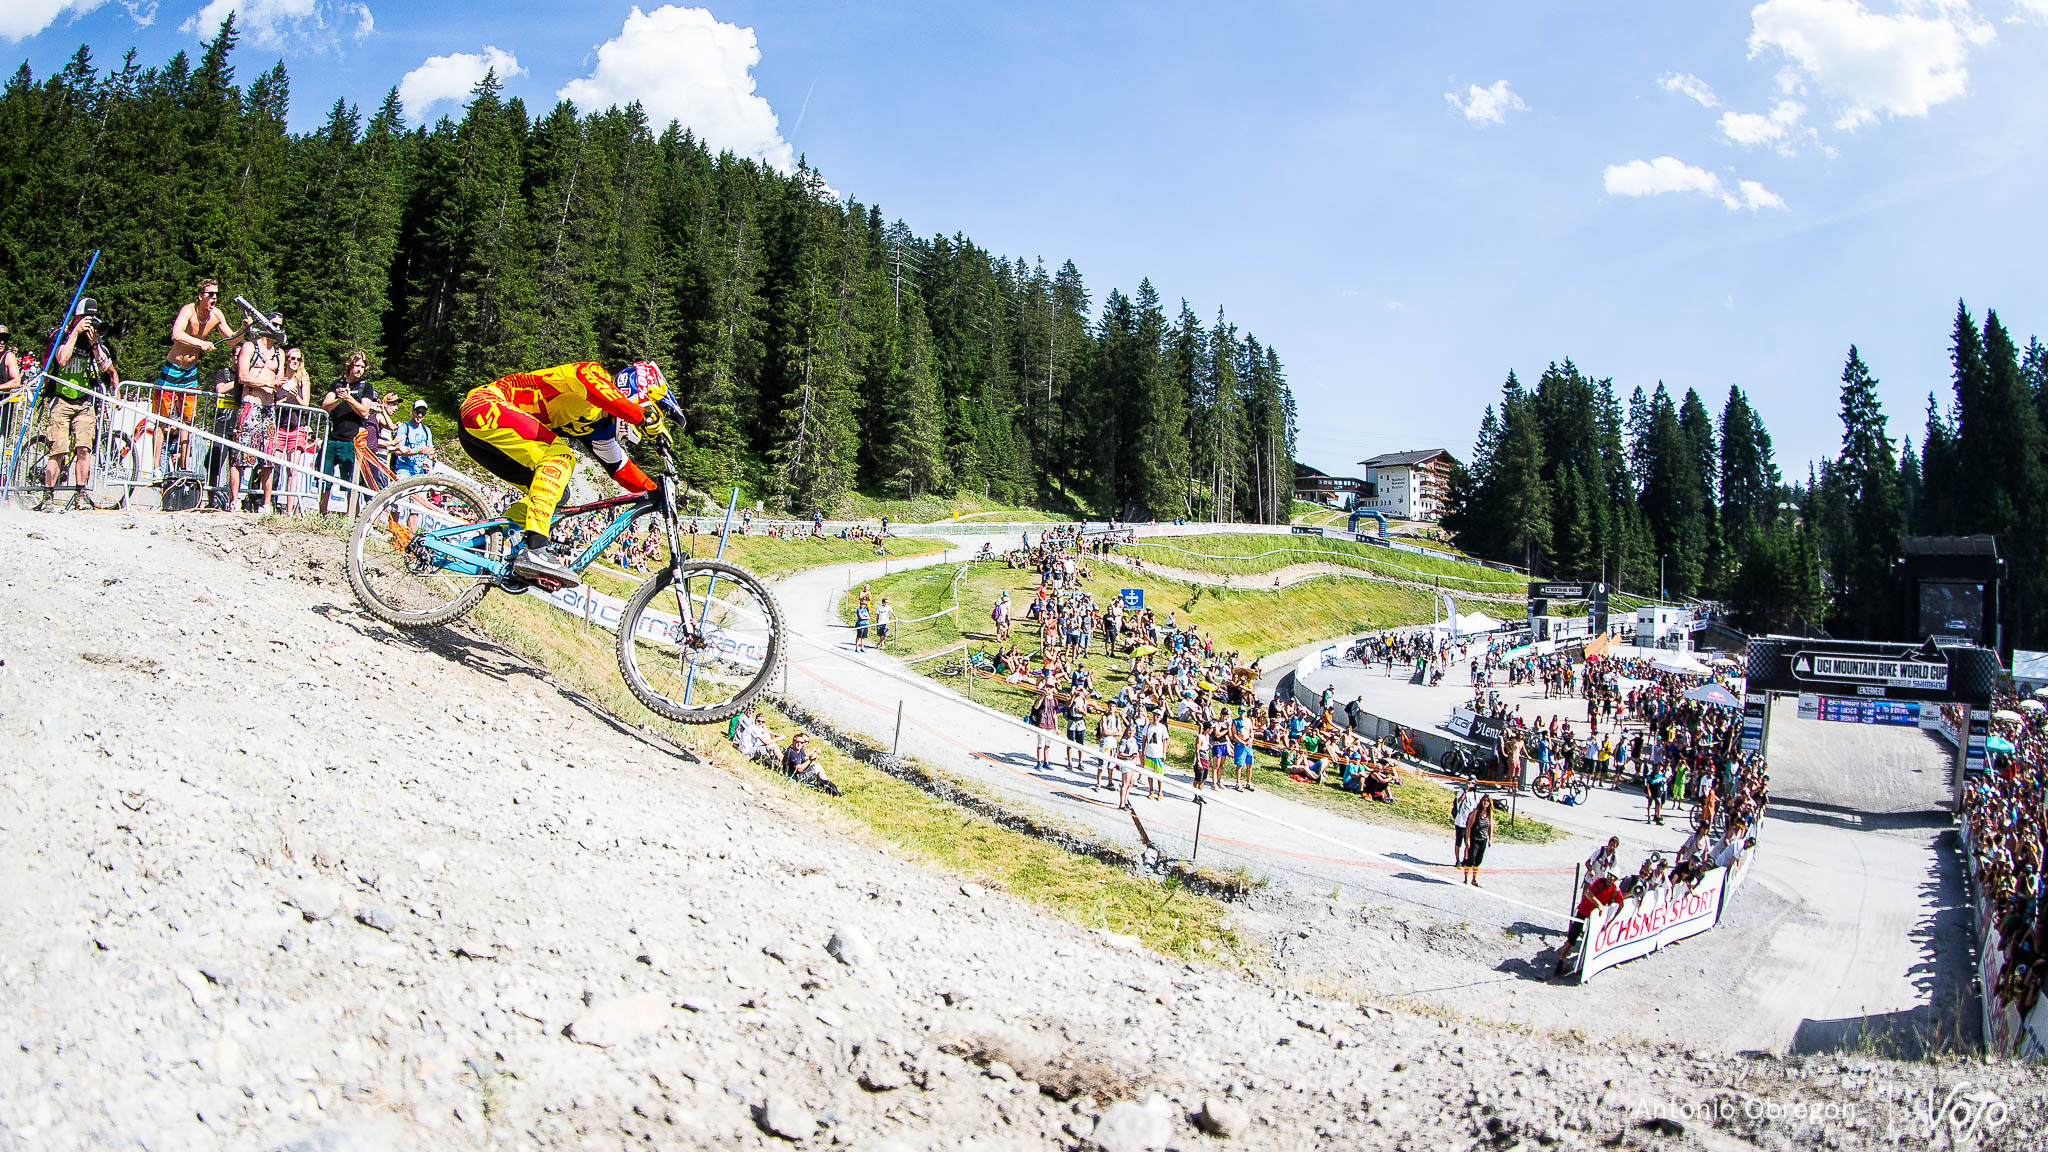 Lenzerheide_UCI_World_Cup_DH_2015_final_Porfoli_Elite_Copyright_Antonio_Obregon_VojoMag-87